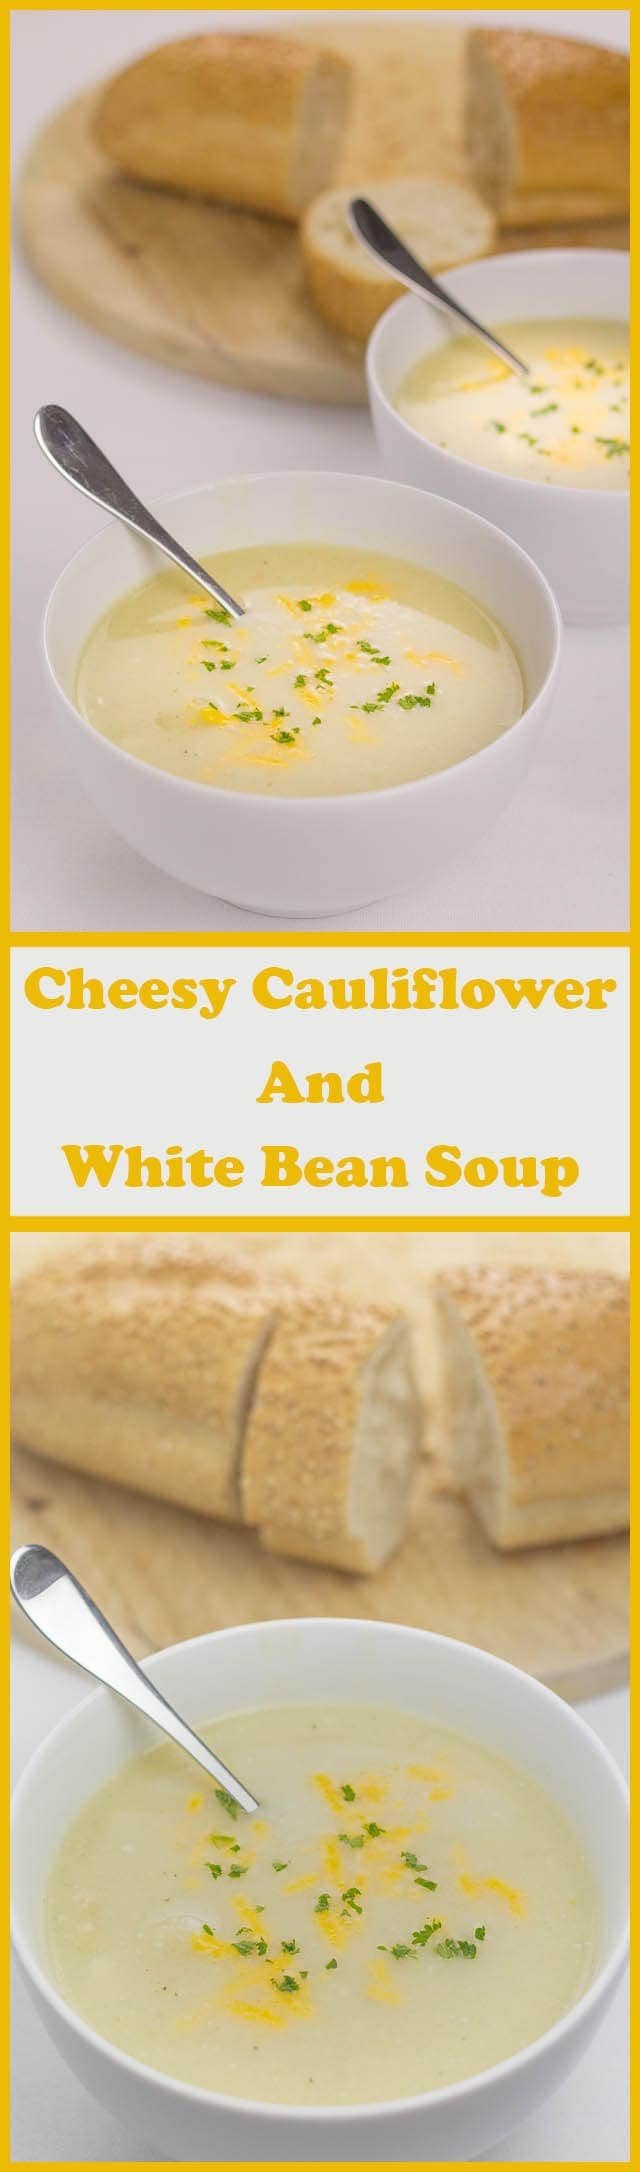 My cheesy cauliflower and white bean soup is a delicious way of creating a twist on the classic combination of cauliflower cheese in the form of a healthy versatile bean soup. Low in fat but packed with essential protein this makes a great, quick healthy lunchtime staple.